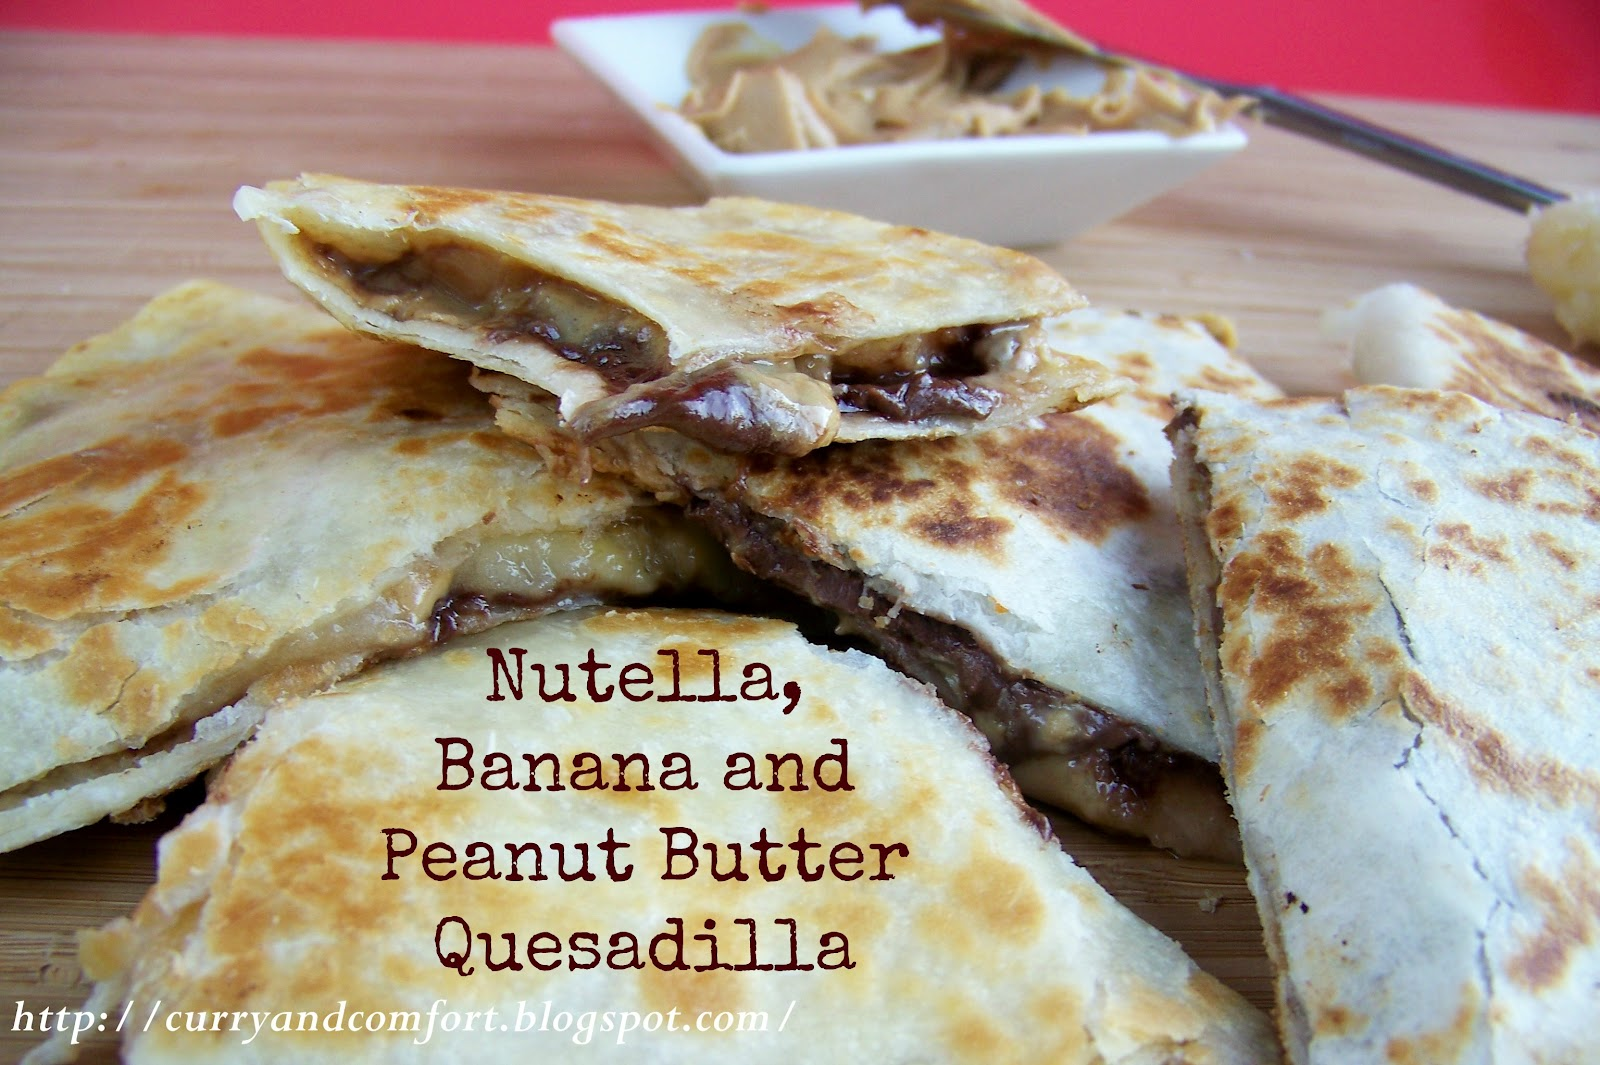 Kitchen Simmer: Nutella, Banana and Peanut Butter Quesadillas